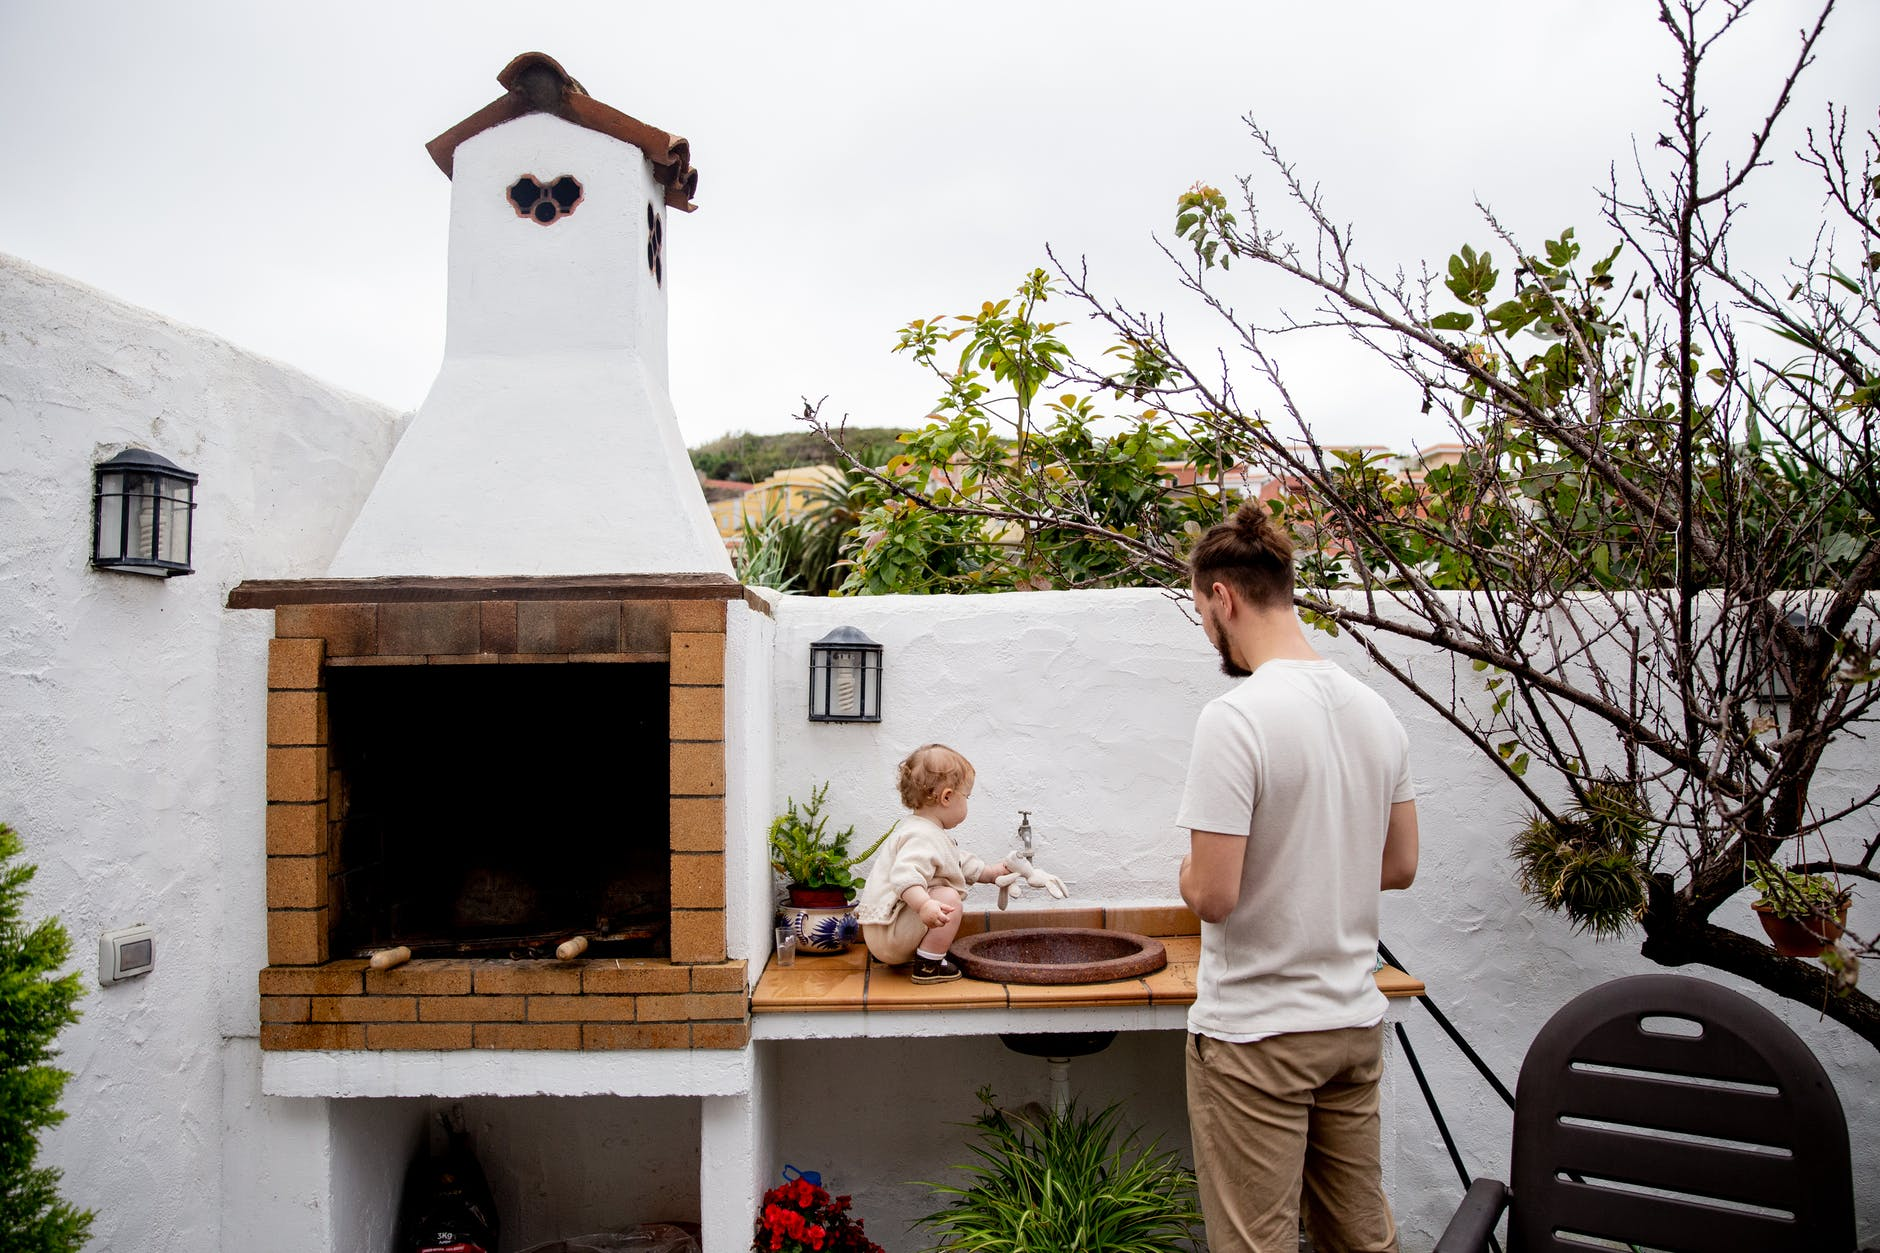 young father with adorable little child near outdoor kitchen